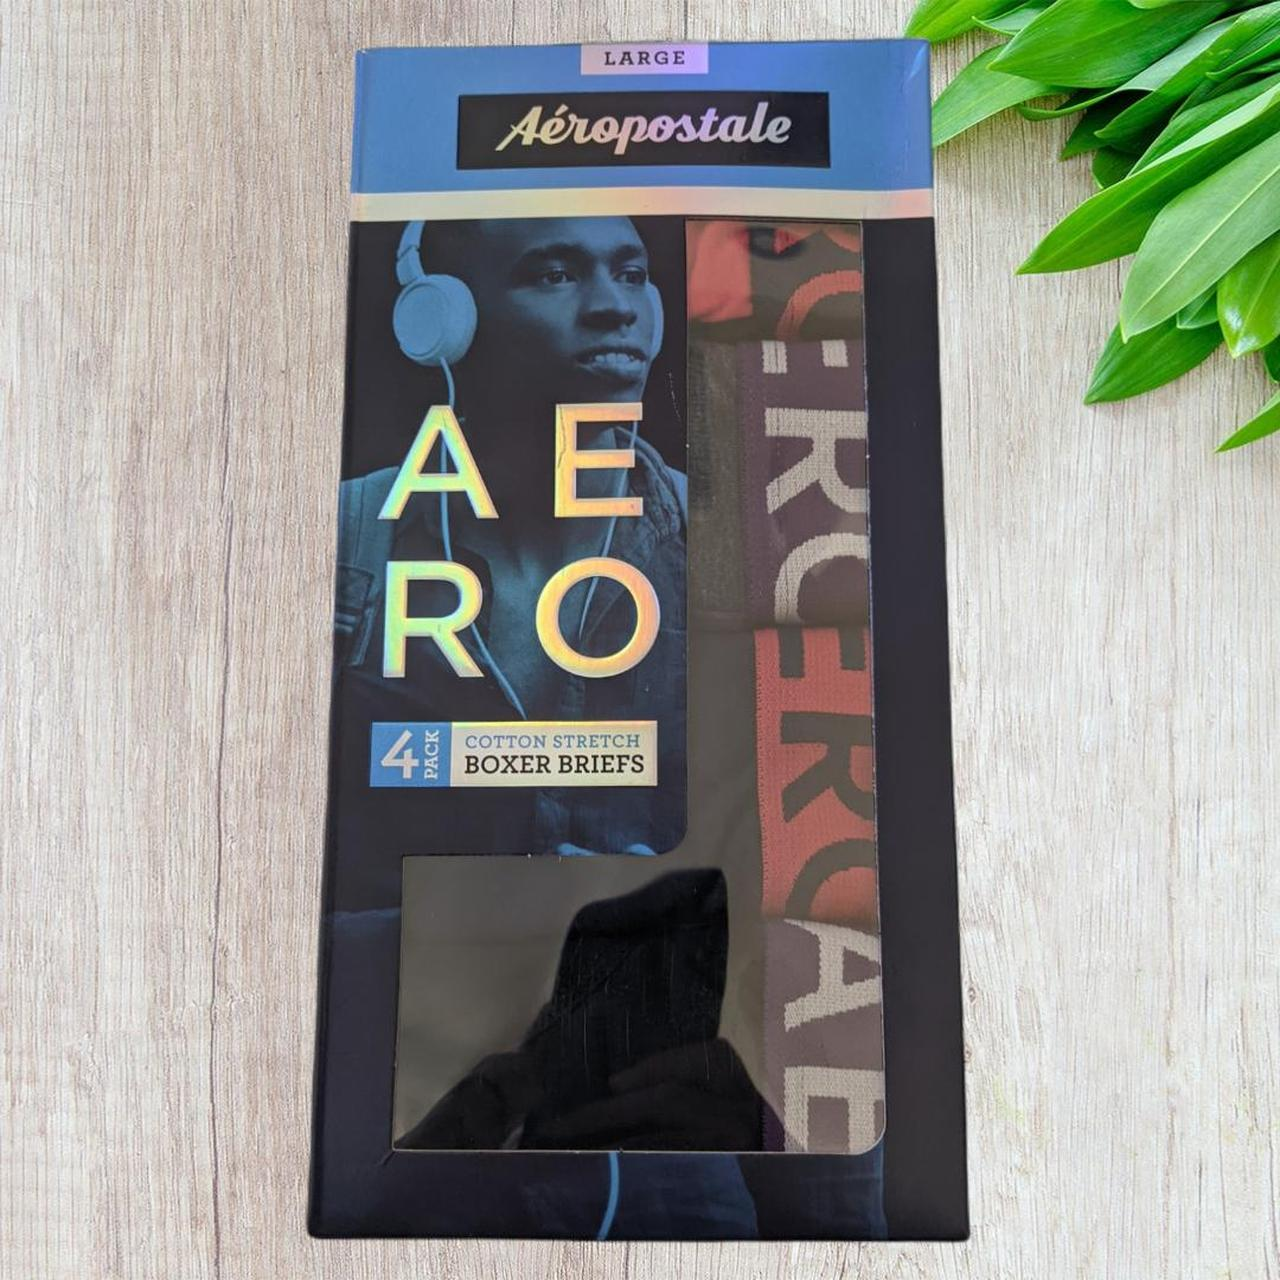 Product Image 1 - Aeropostale Boxer Briefs 4 PACK